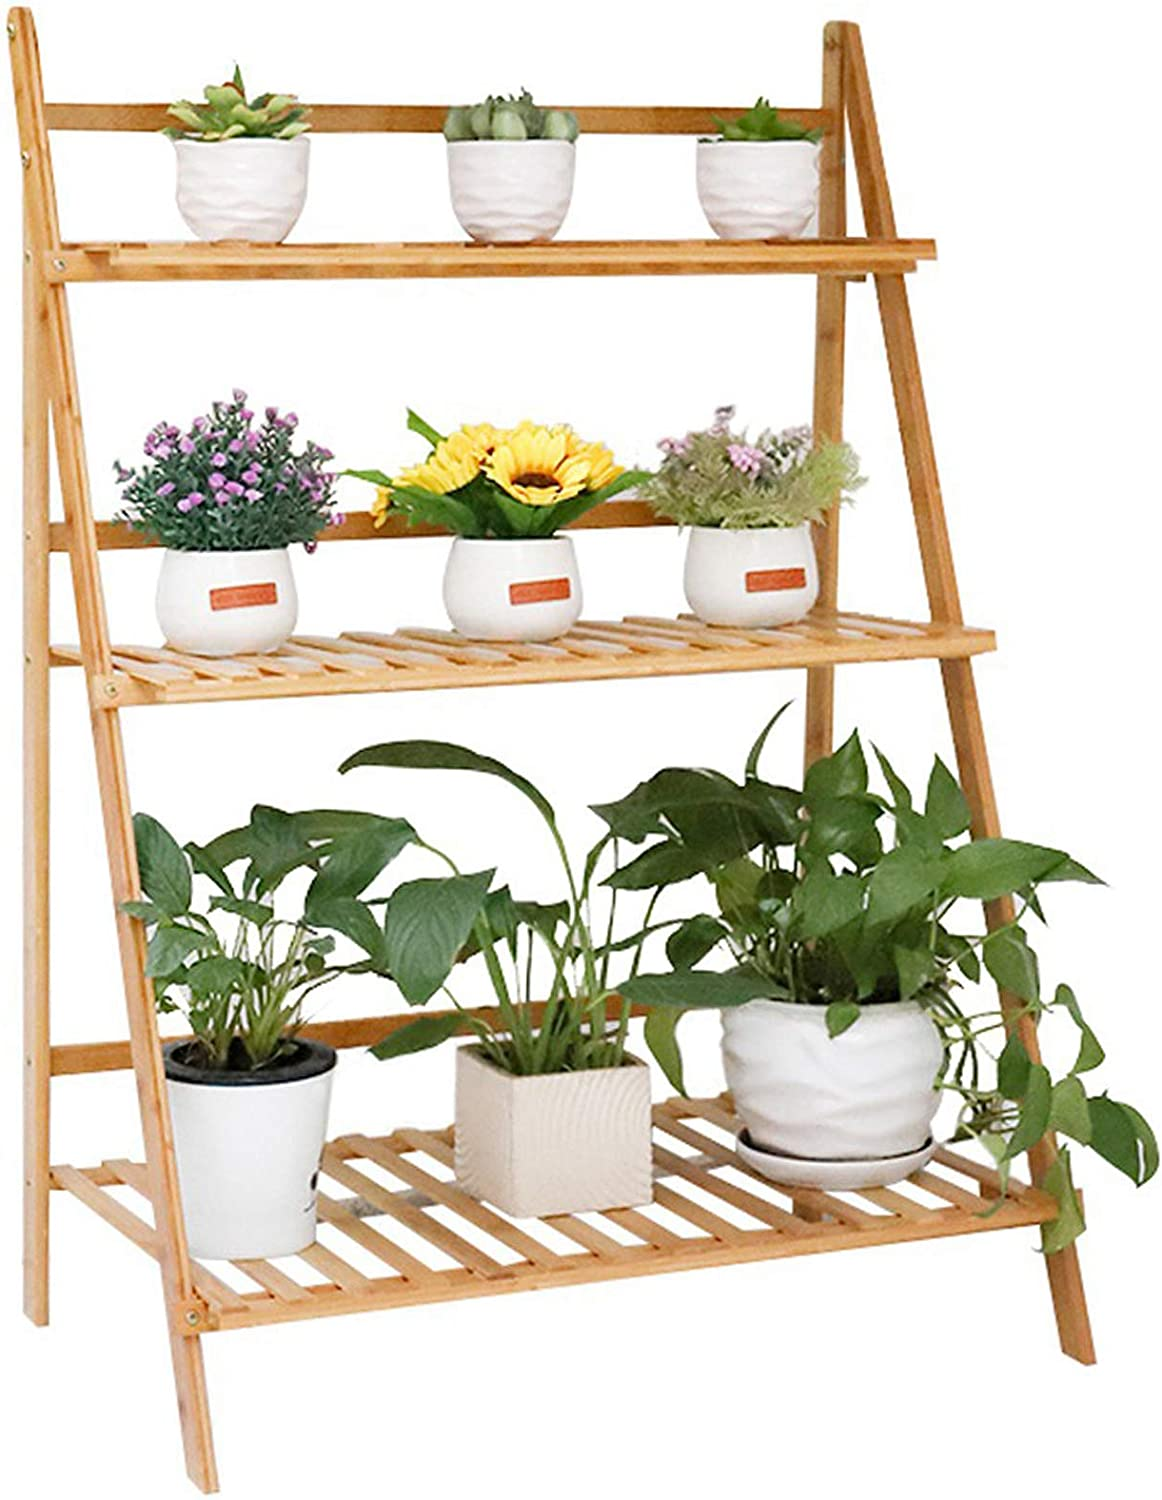 Unho Bamboo Foldable Plant Stand 3 Tier Ladder Displaying Shelf Rack Indoor Flower Pot Succulents Small Planters Organizer Home Garden 70cm Length Garden Outdoor